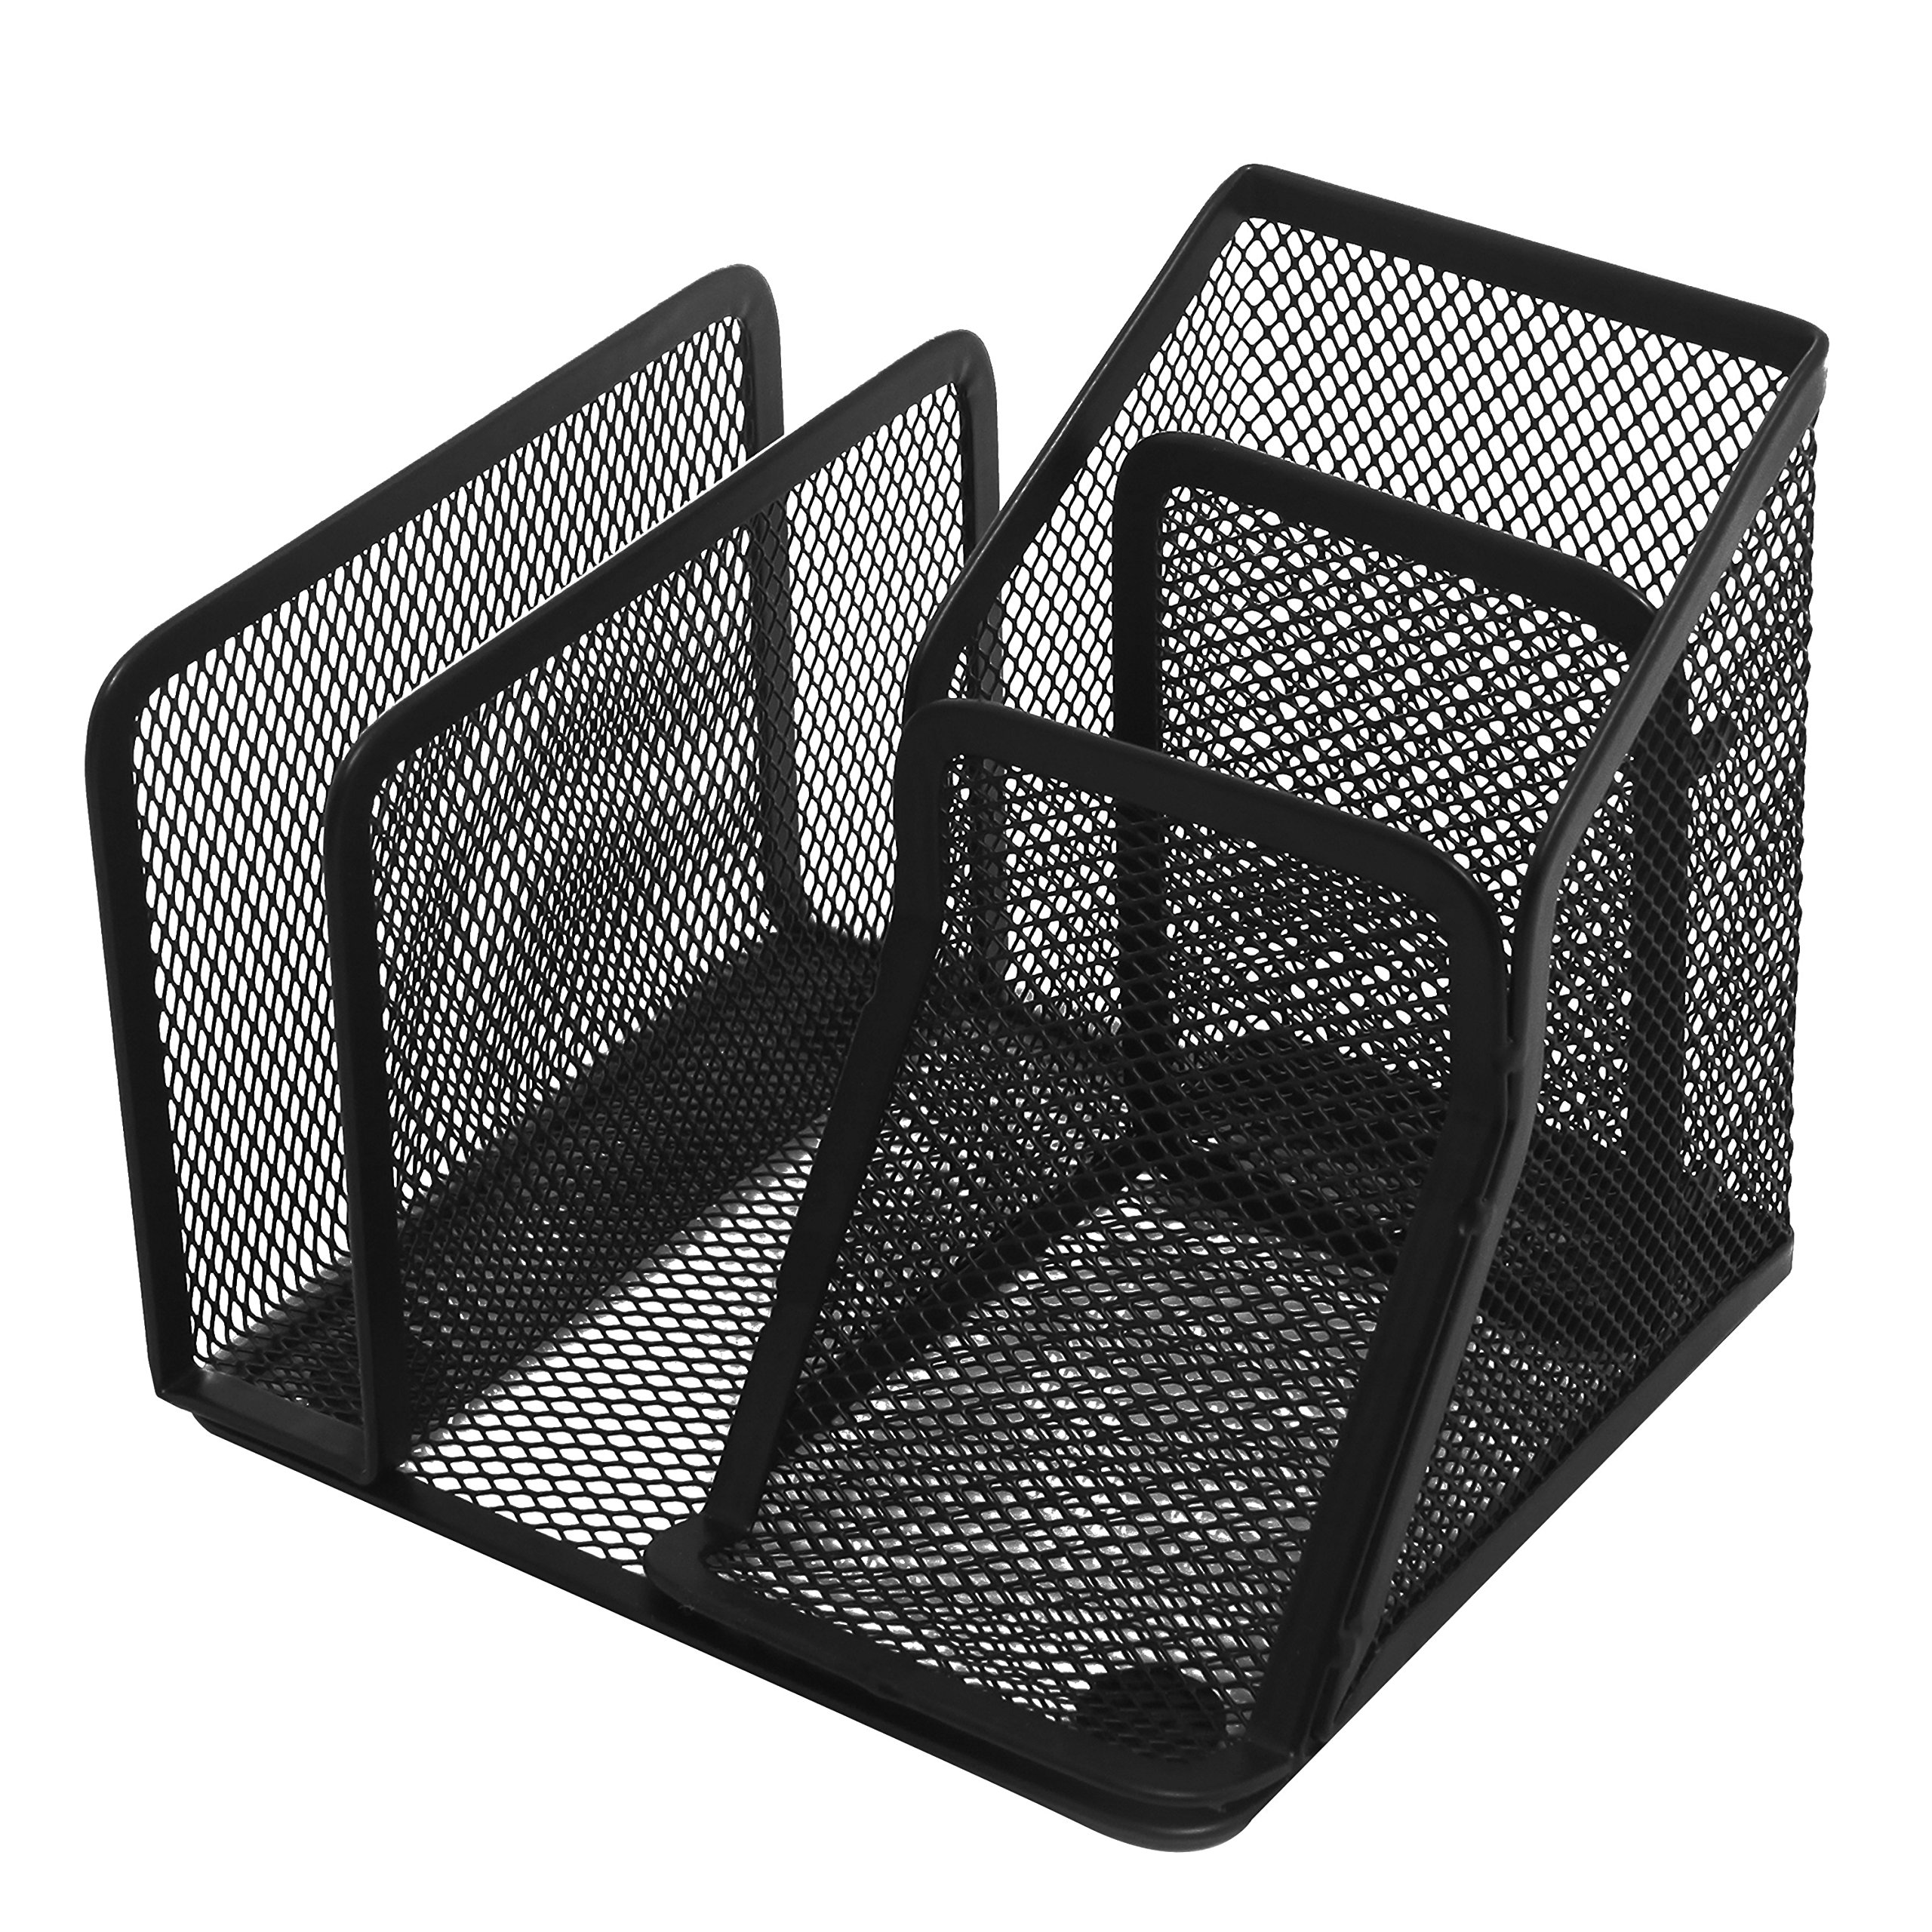 Cheap metal mail sorter find metal mail sorter deals on line at get quotations black metal mesh office supplies organizer storage caddy rack w business card holder mail colourmoves